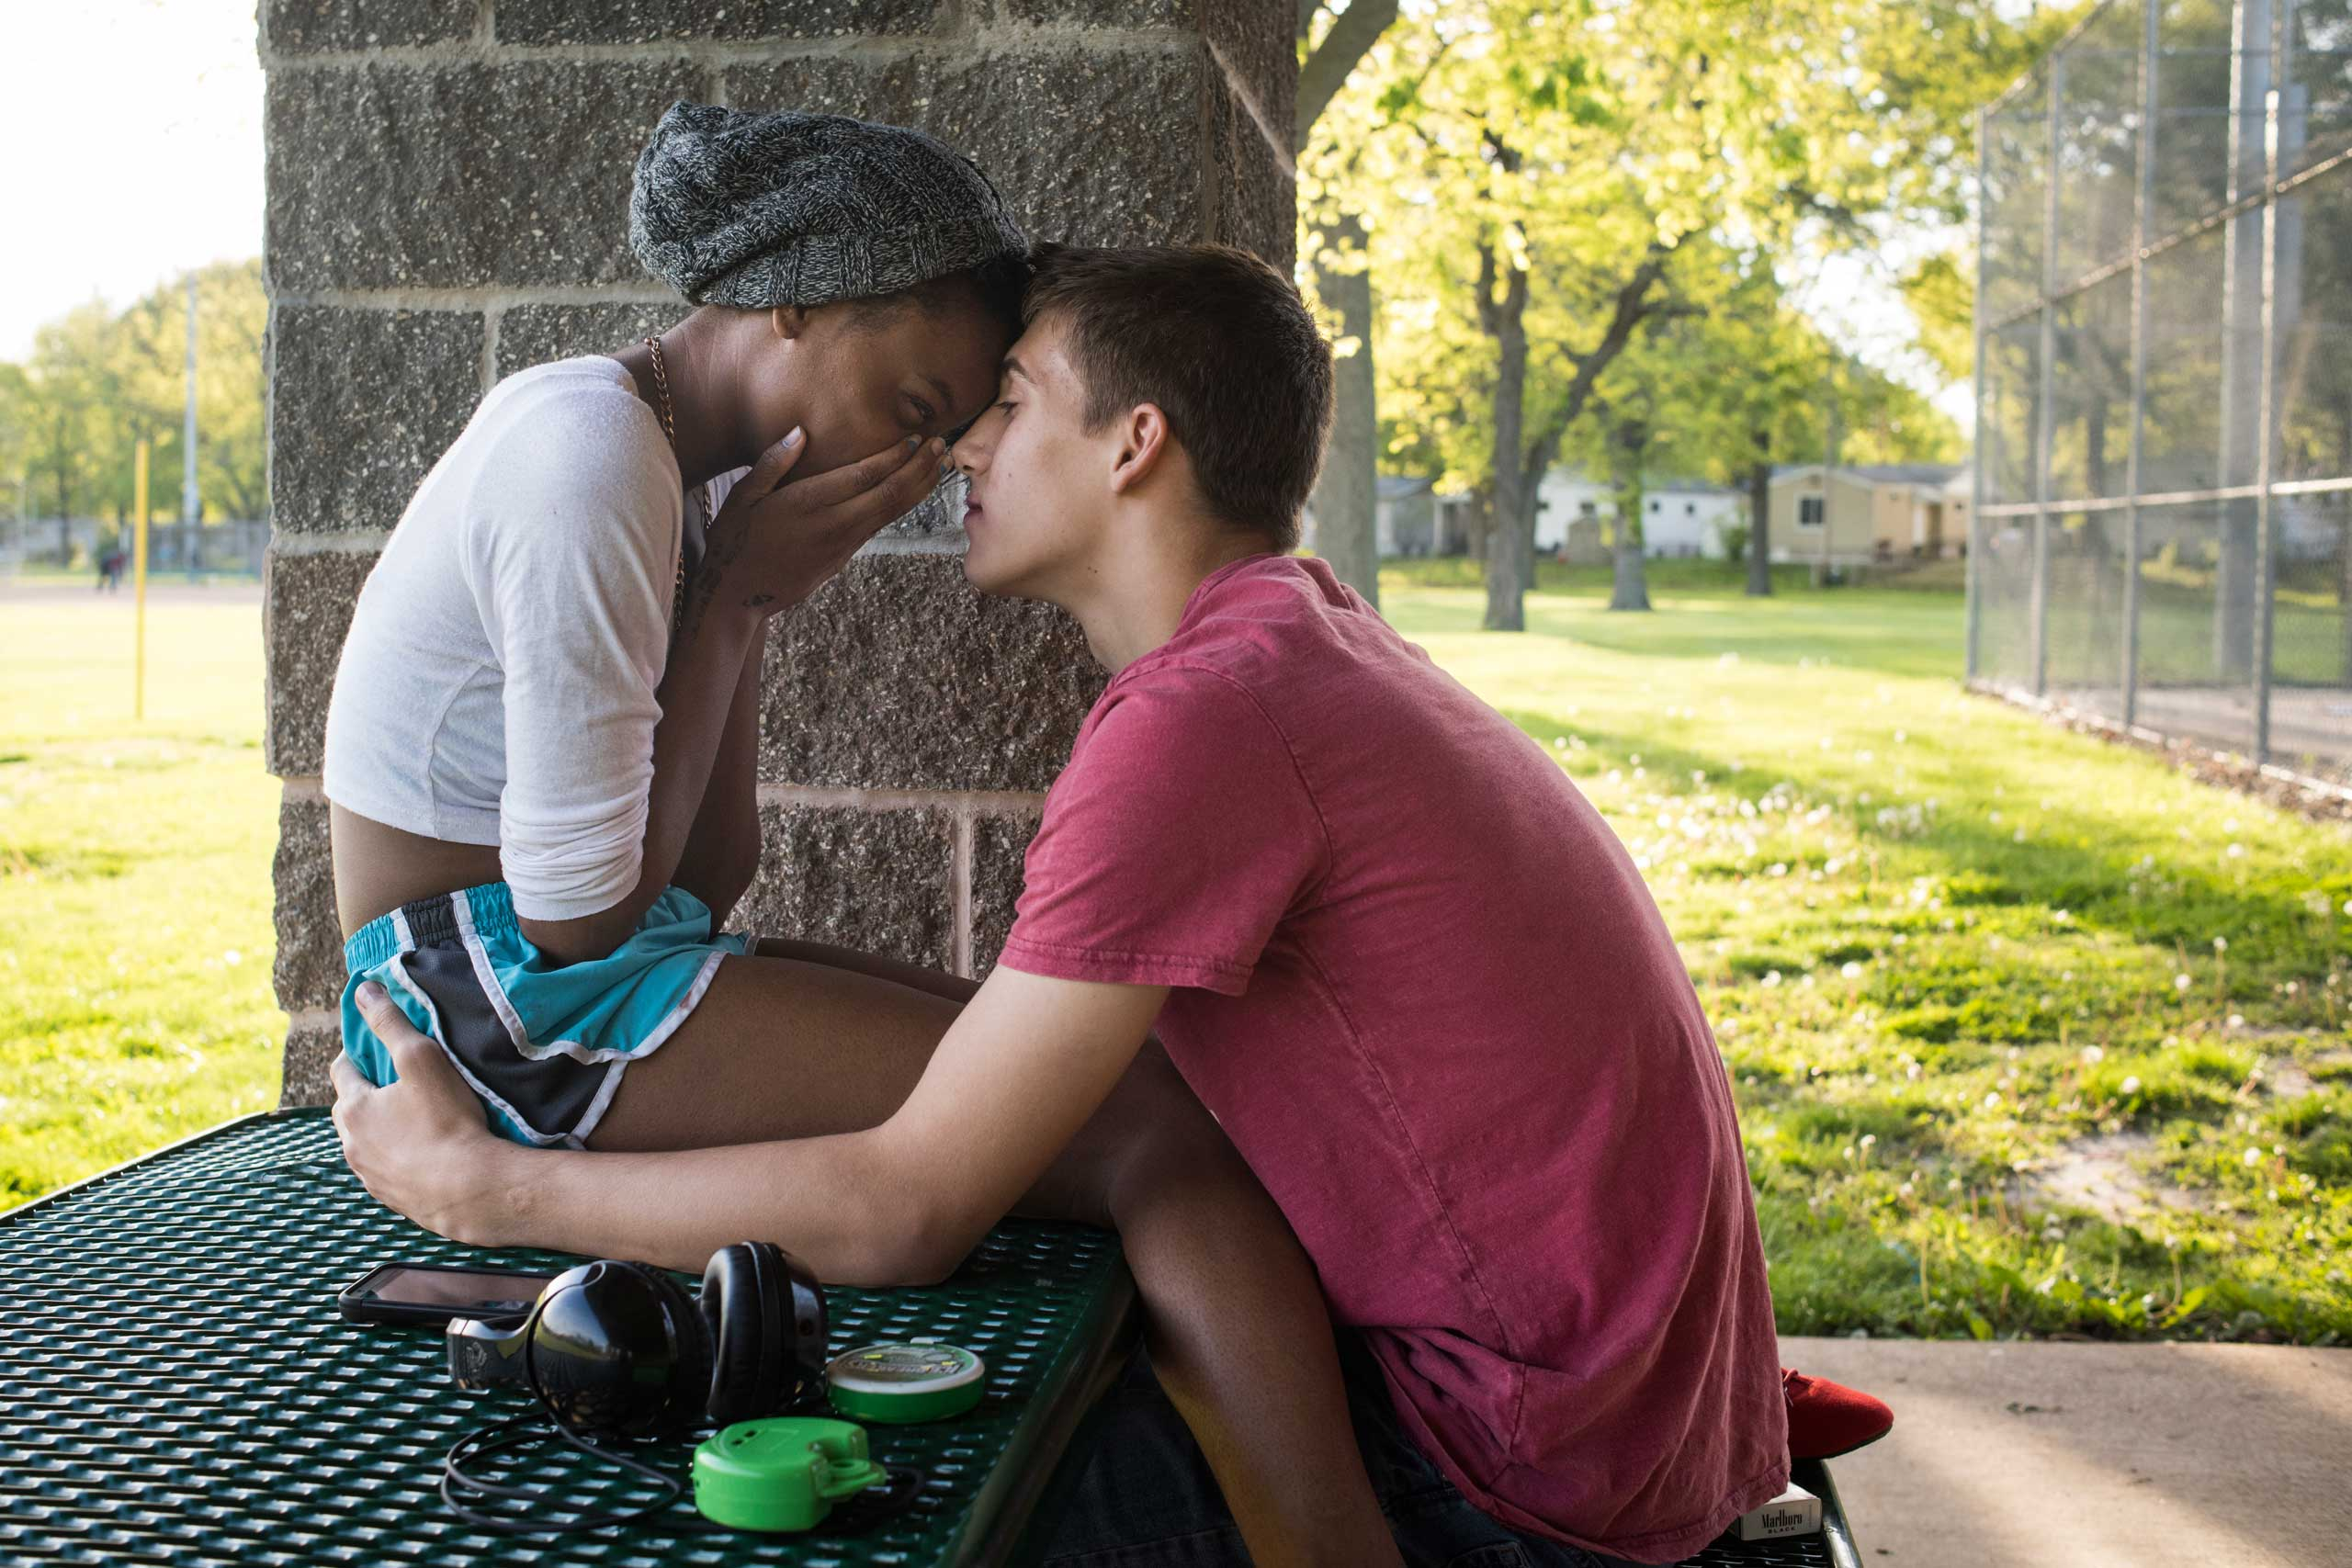 Grace Williams, a high school freshman from Ferguson, kisses Patrick Clinton, a sophomore, while at Forestwood Park. The two had been flirting for a few weeks but hadn't quite figured out if they were officially dating.